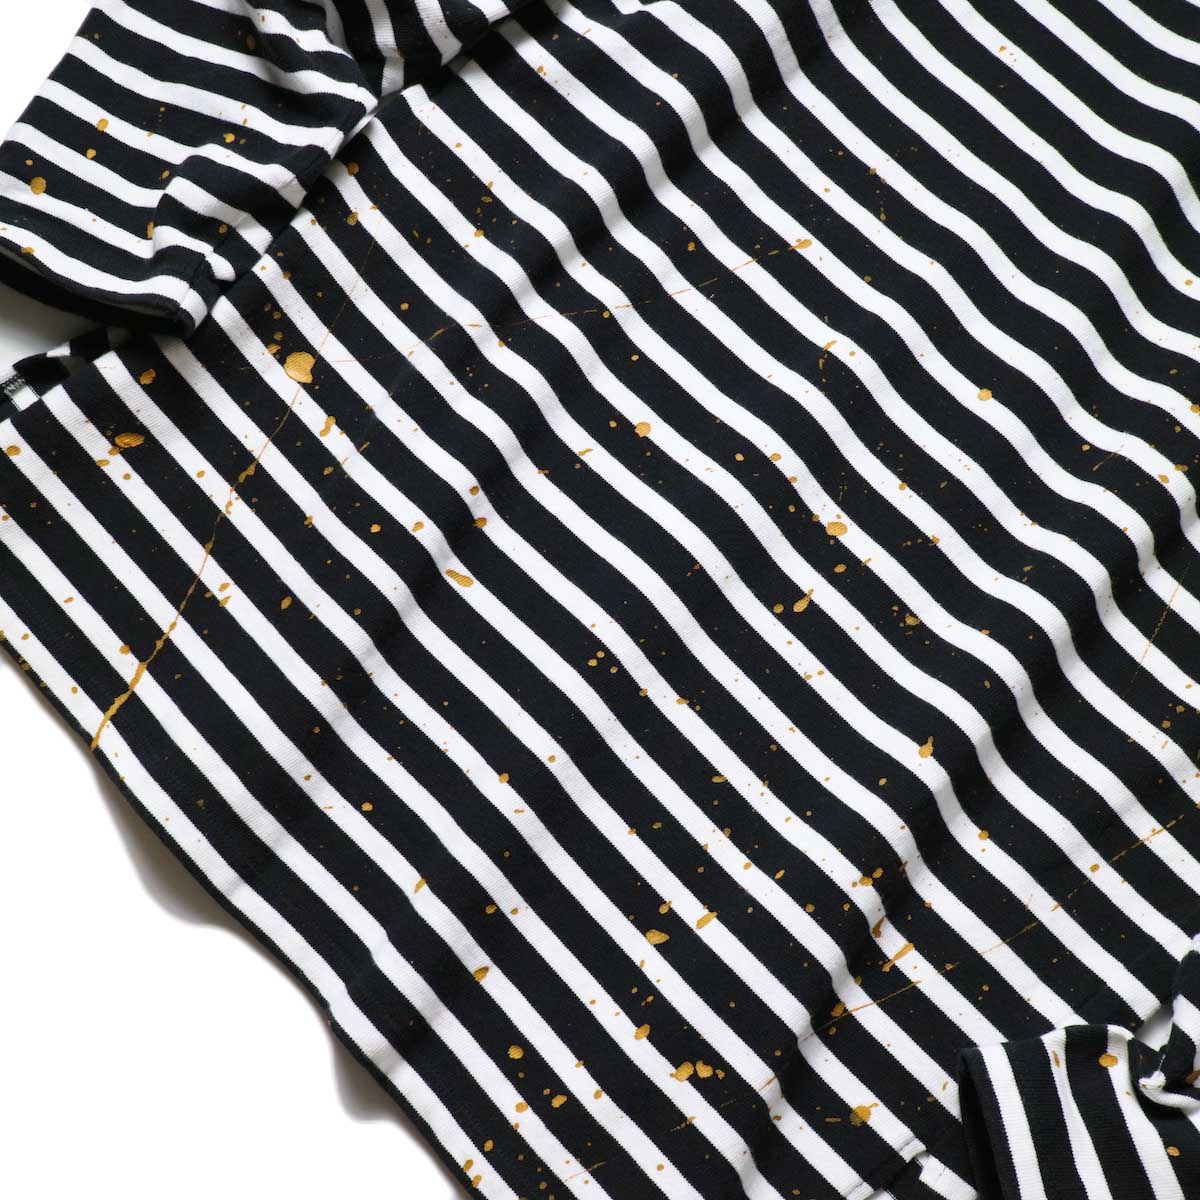 MASTER&Co. / BASQUE BORDER WITH PAINT (Black×White) 正面ペンキペイント